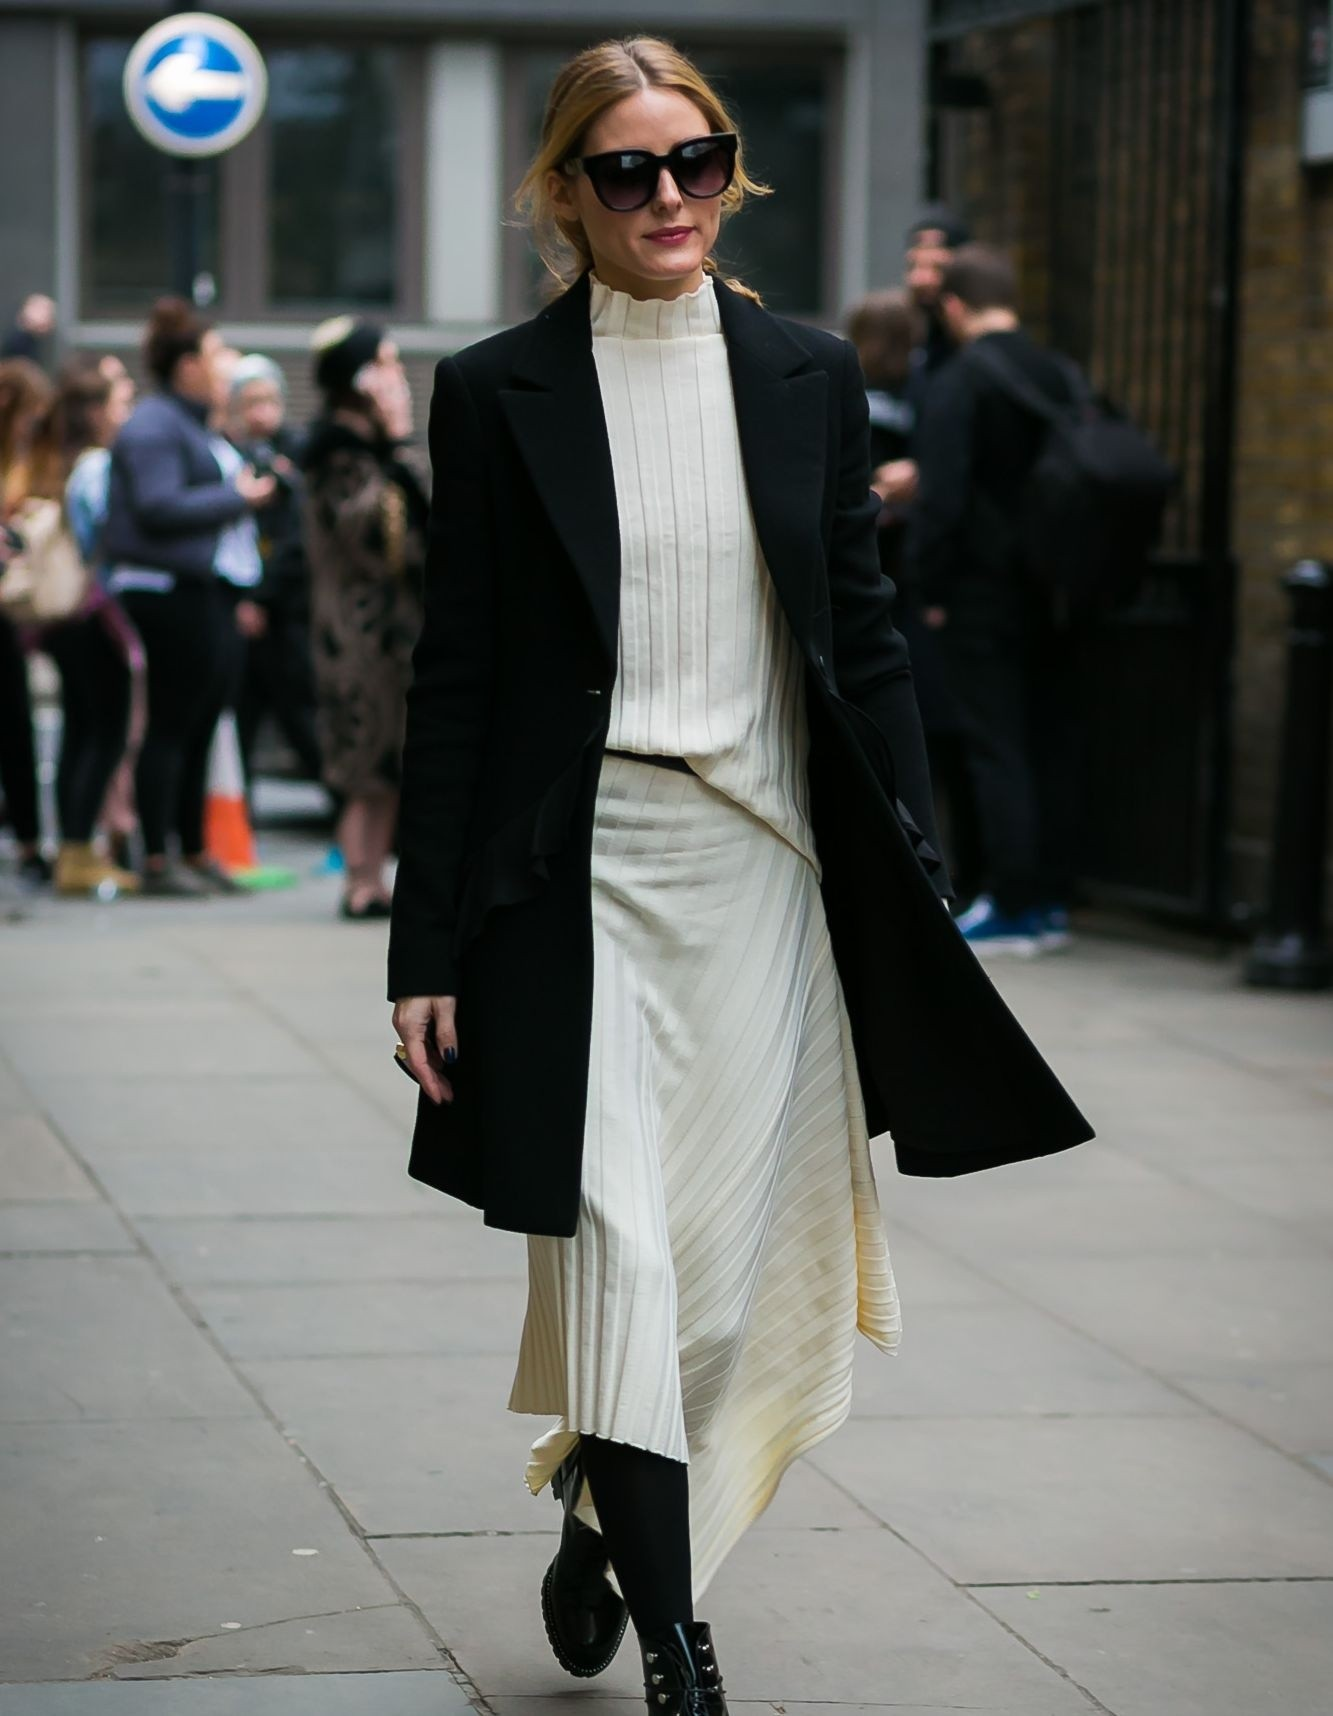 olivia-palermo-by-styledumonde-street-style-fashion-photography0e2a8063-700x10502x